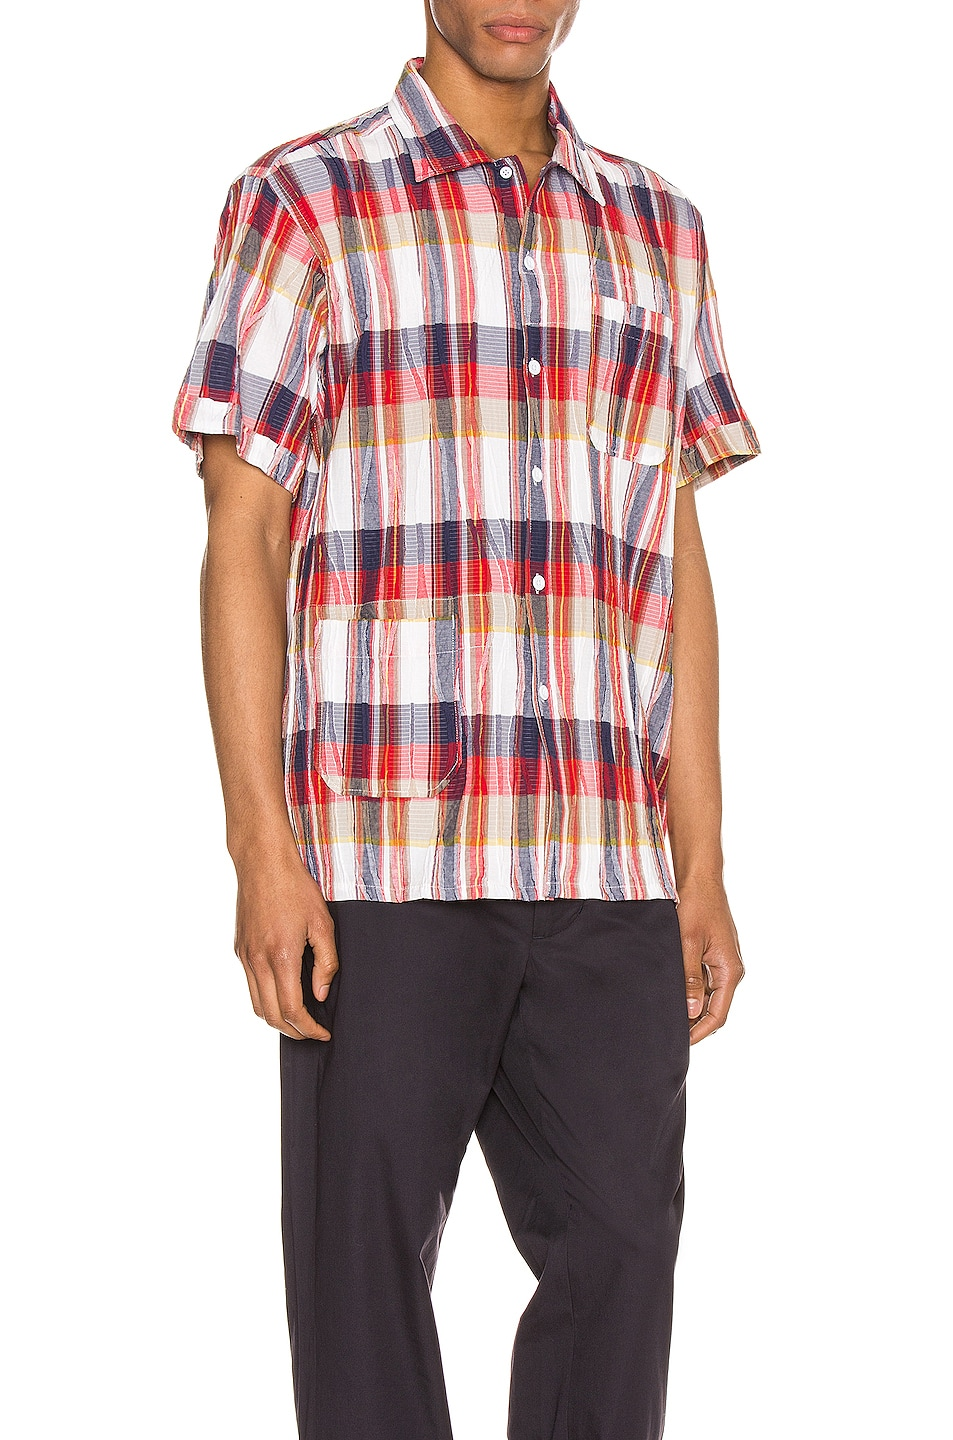 Image 2 of Engineered Garments Camp Shirt in Red & White Cotton Crepe Check